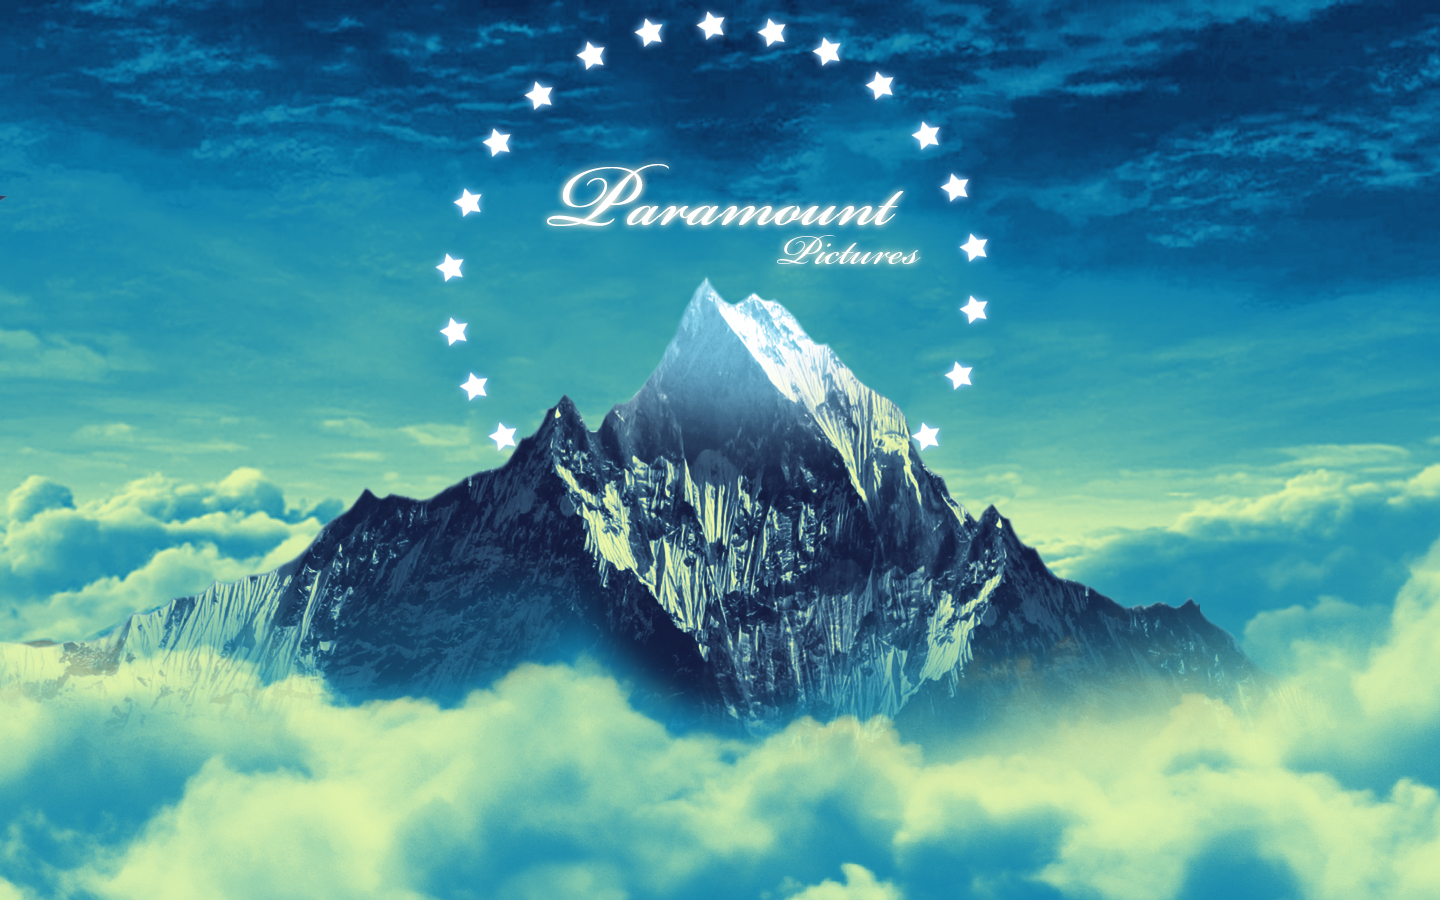 Paramount Pictures 65